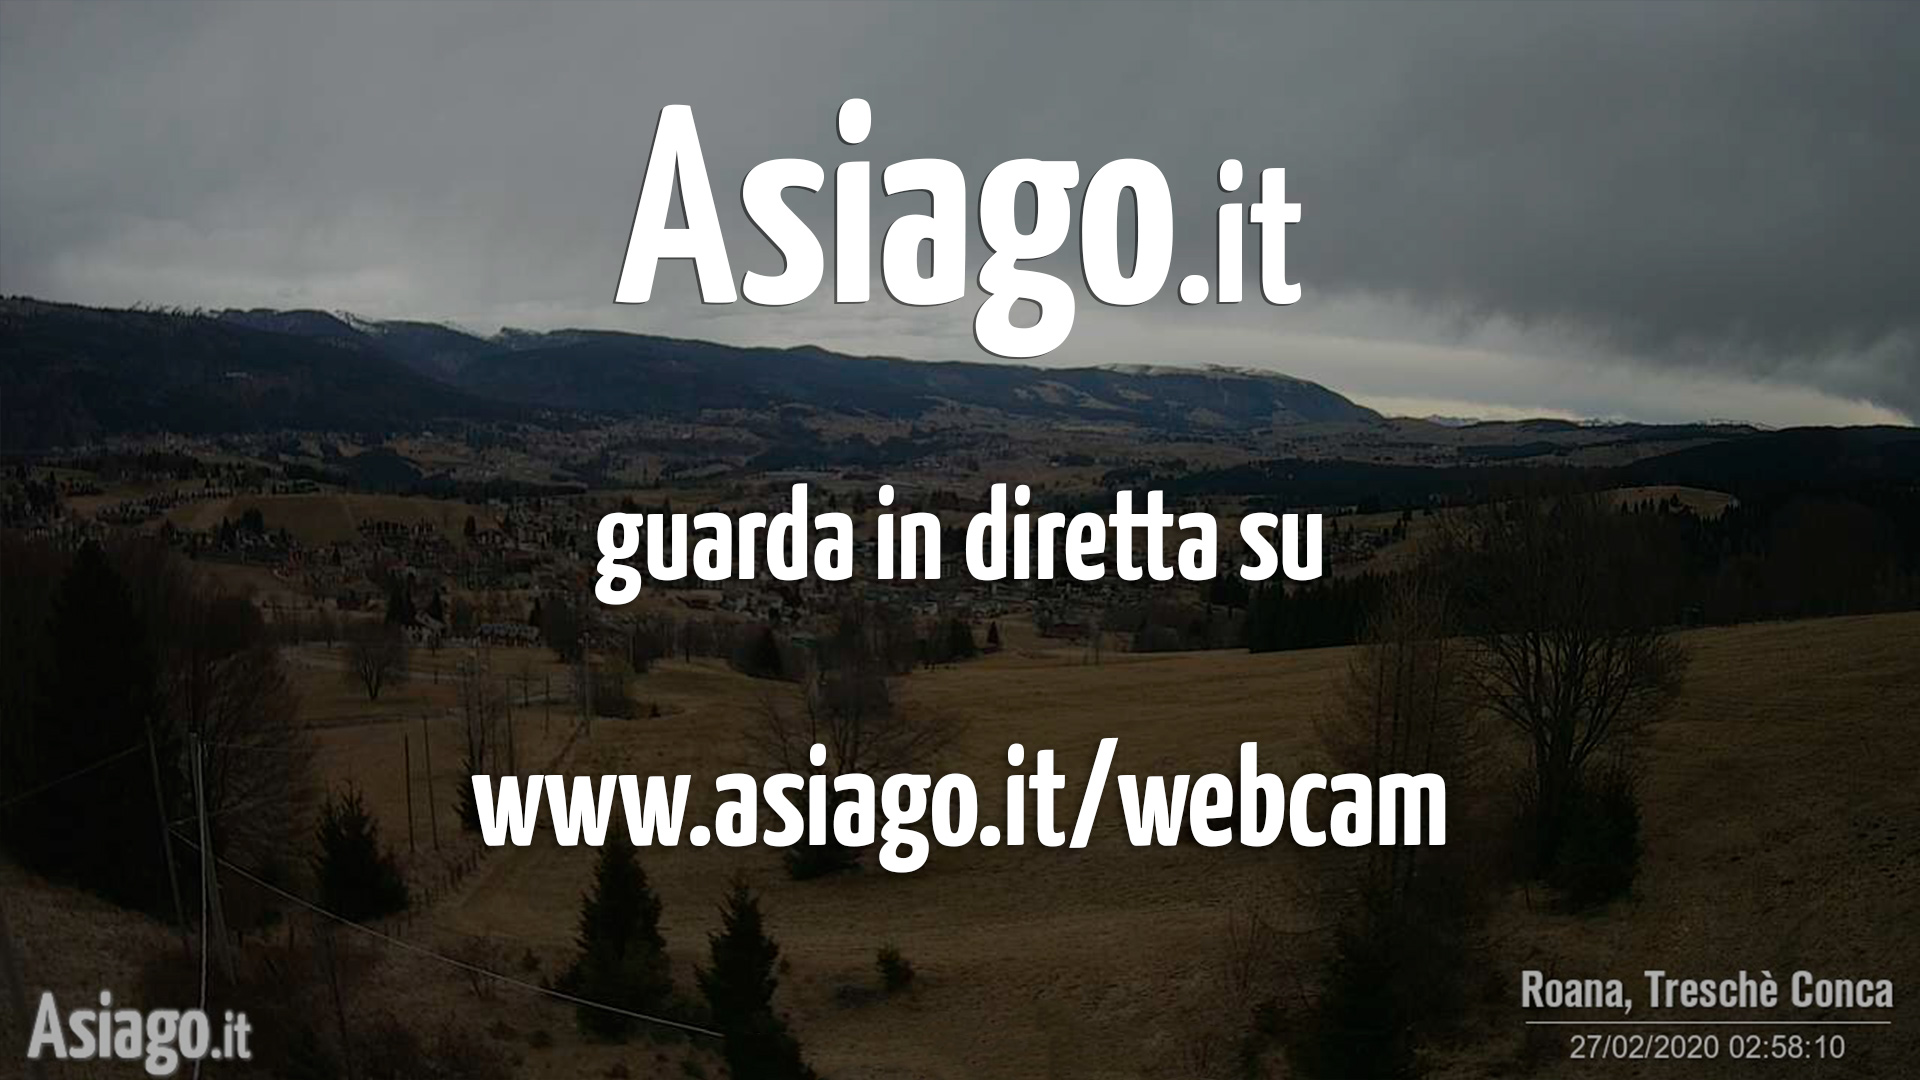 Asiago.it leben Webcams aus La Quinta Restaurant